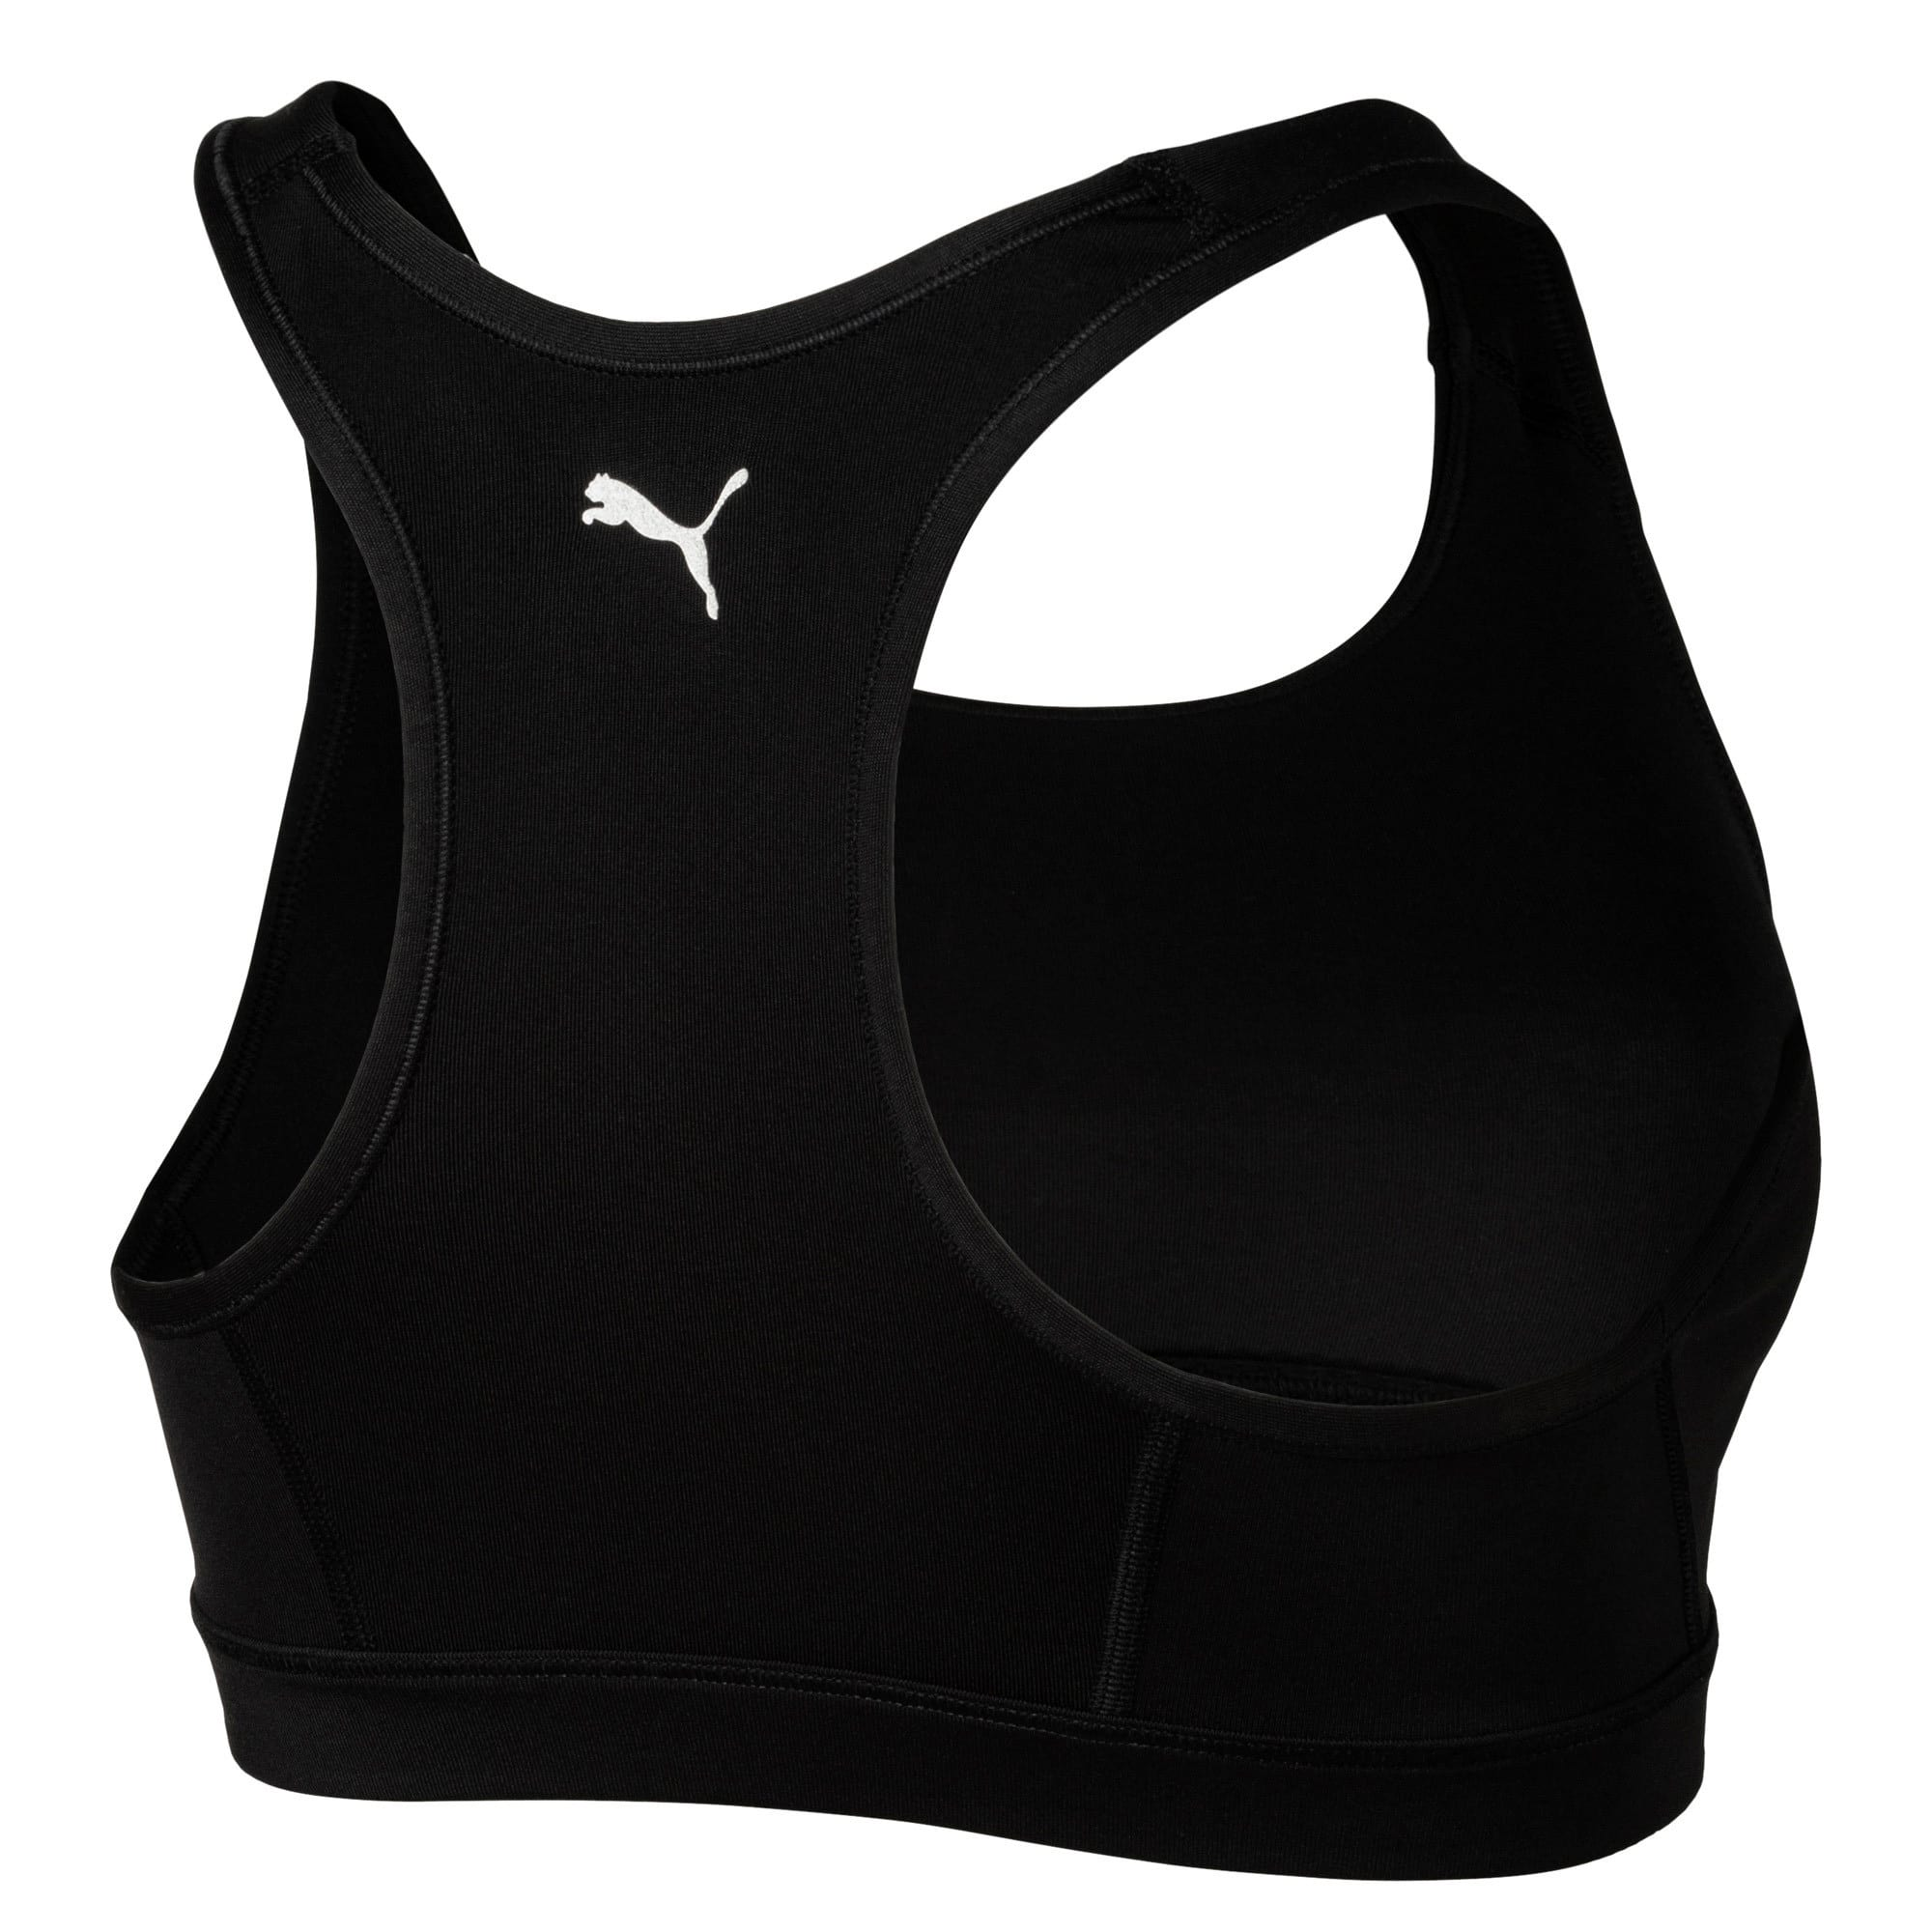 Thumbnail 4 of 4Keeps Women's Mid Impact Bra, Puma Black-Silver PUMA, medium